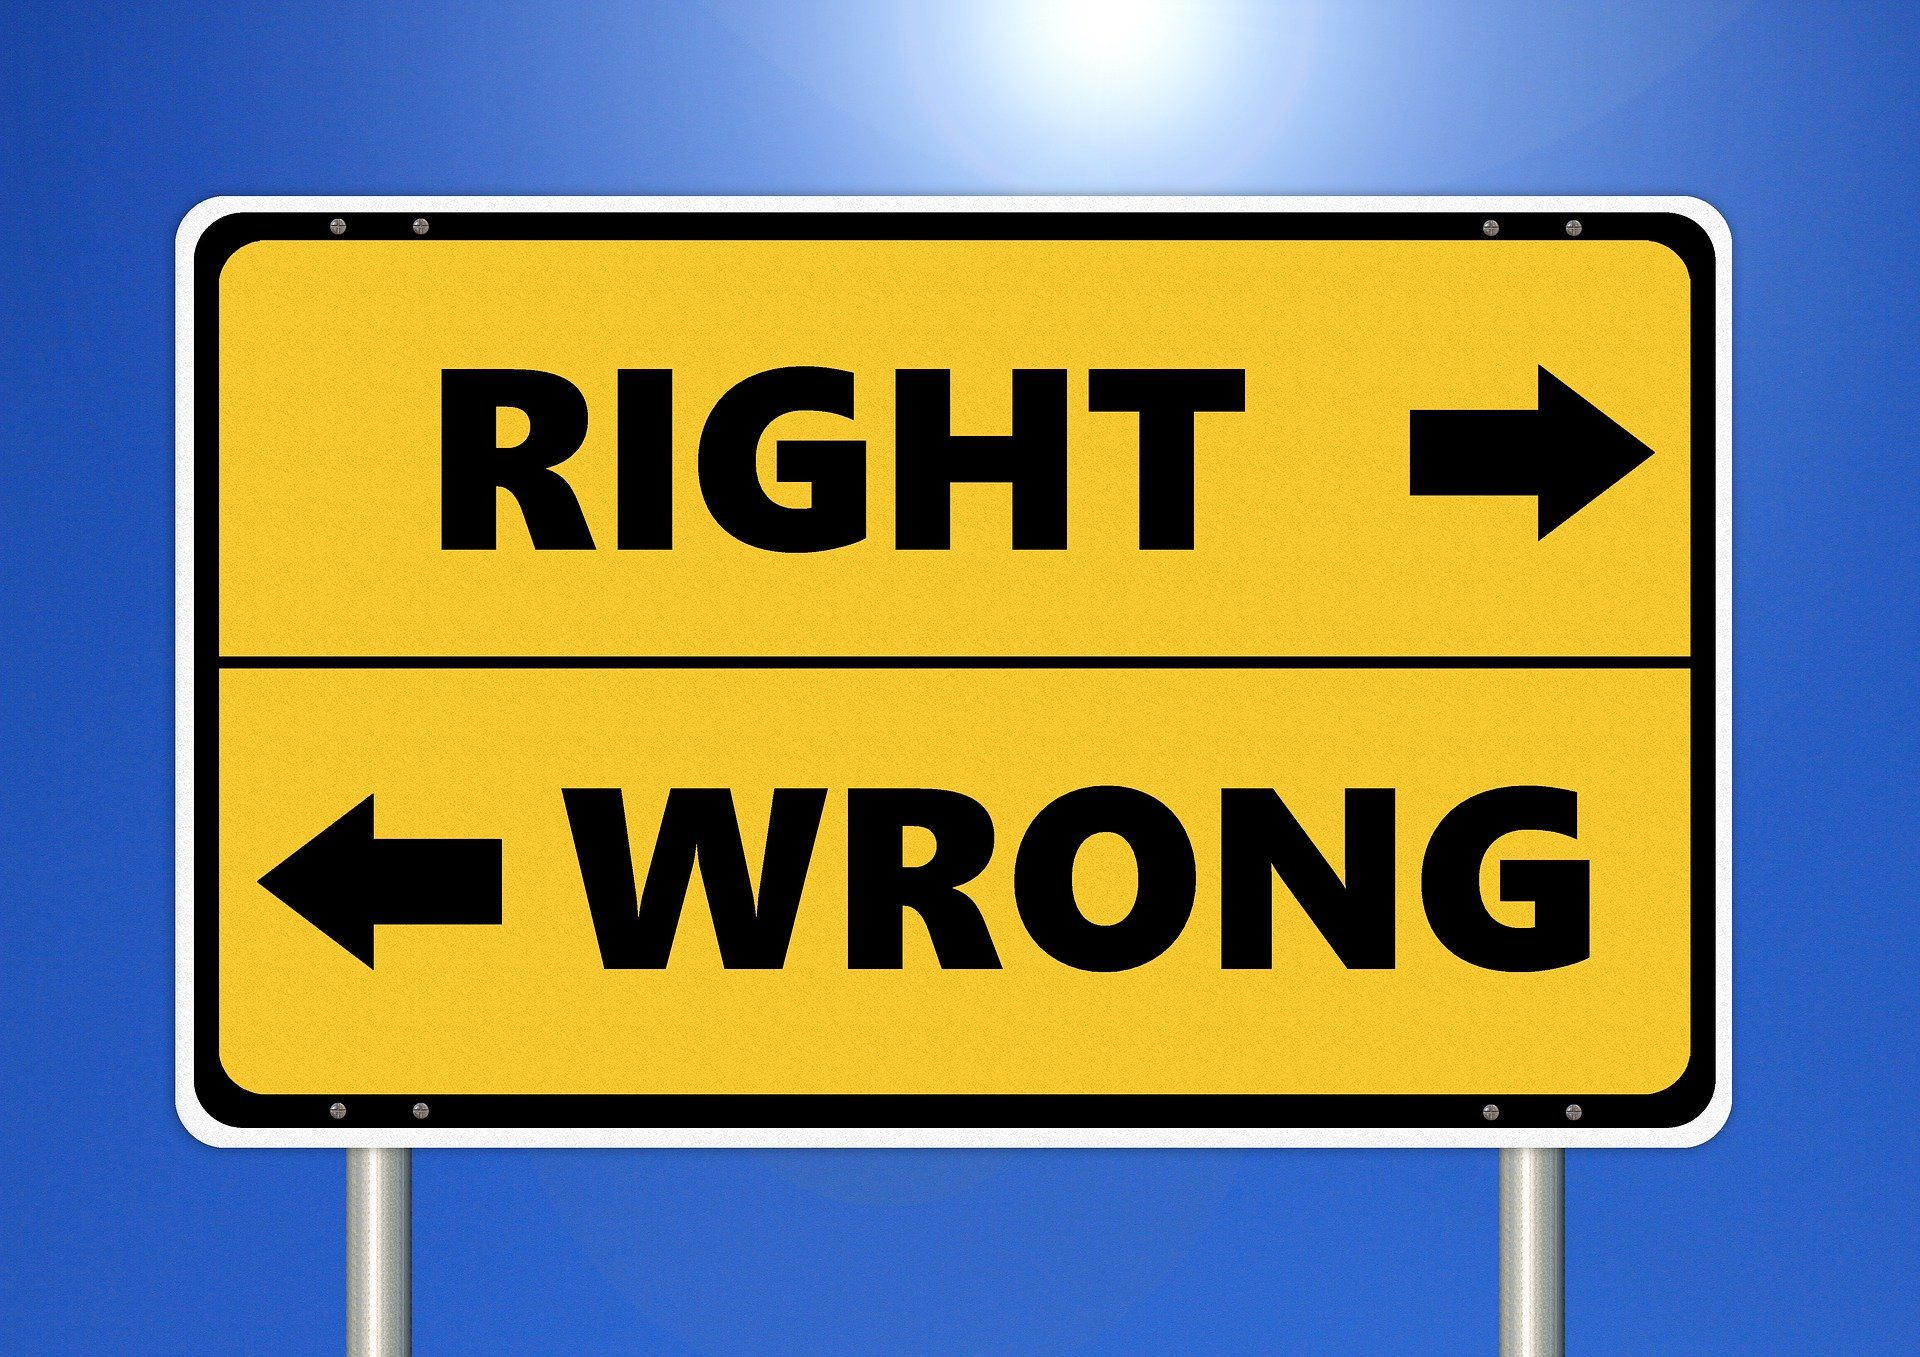 A right or wrong sign.